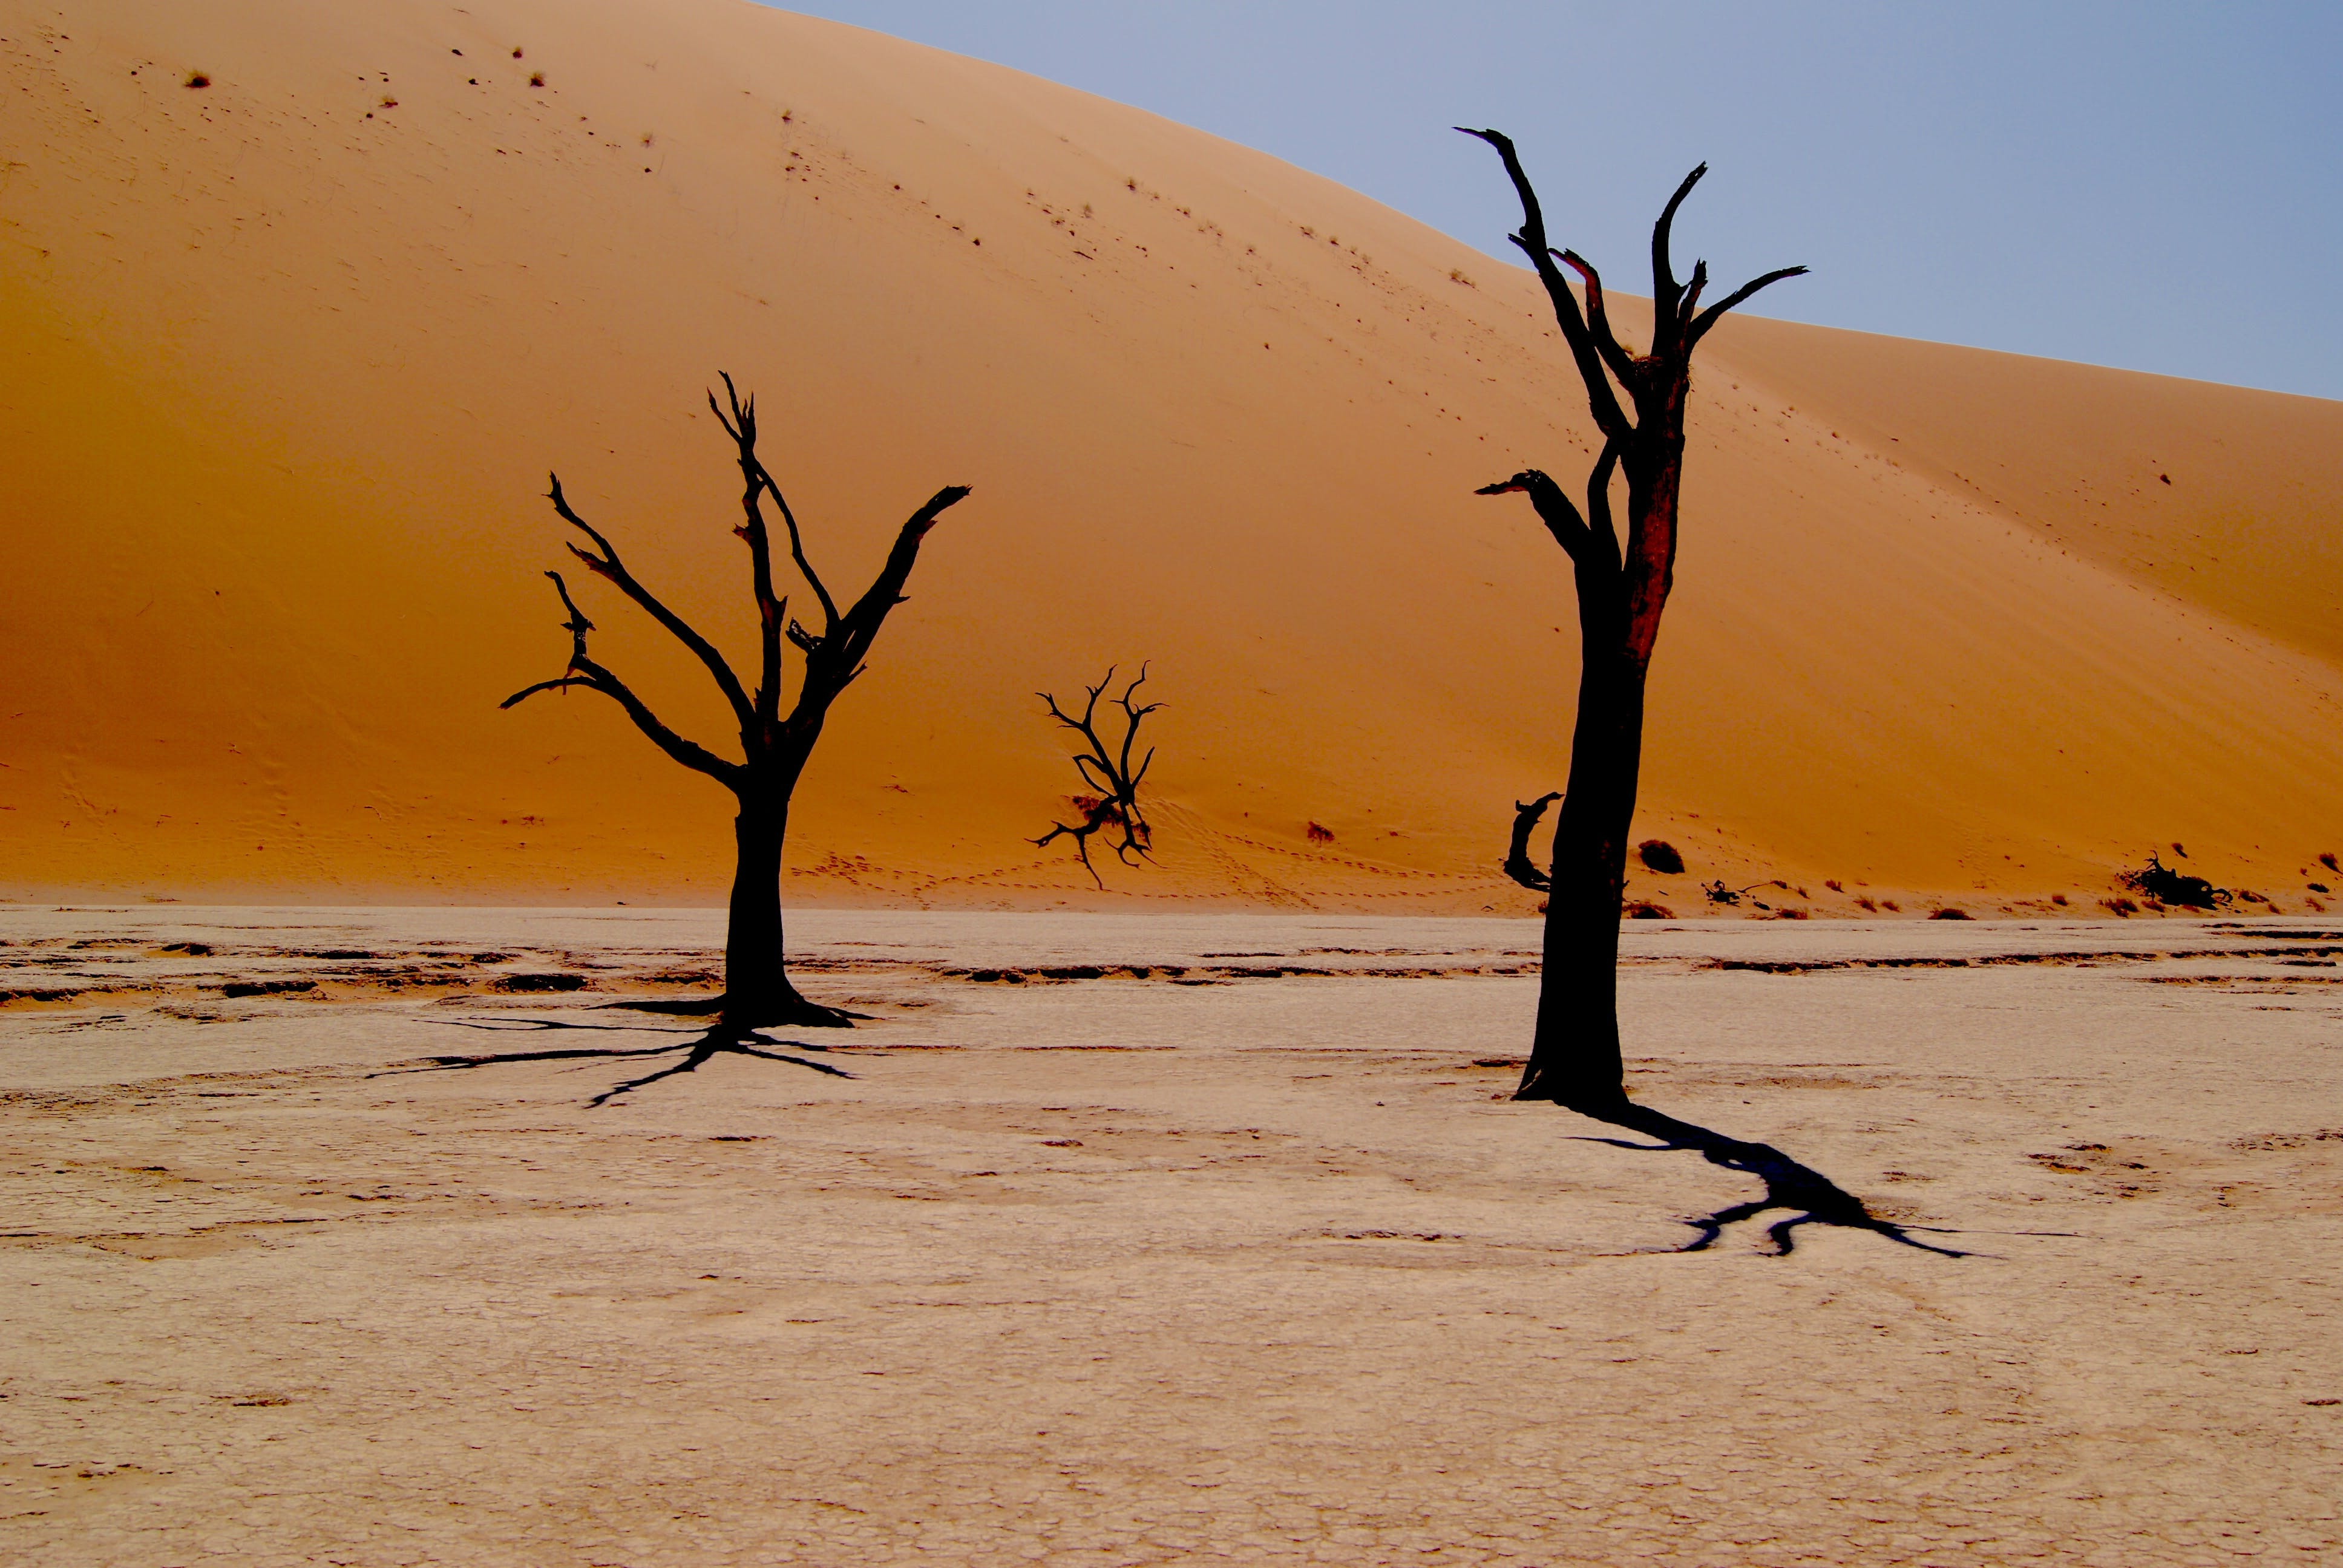 dry trees in a desertified environment